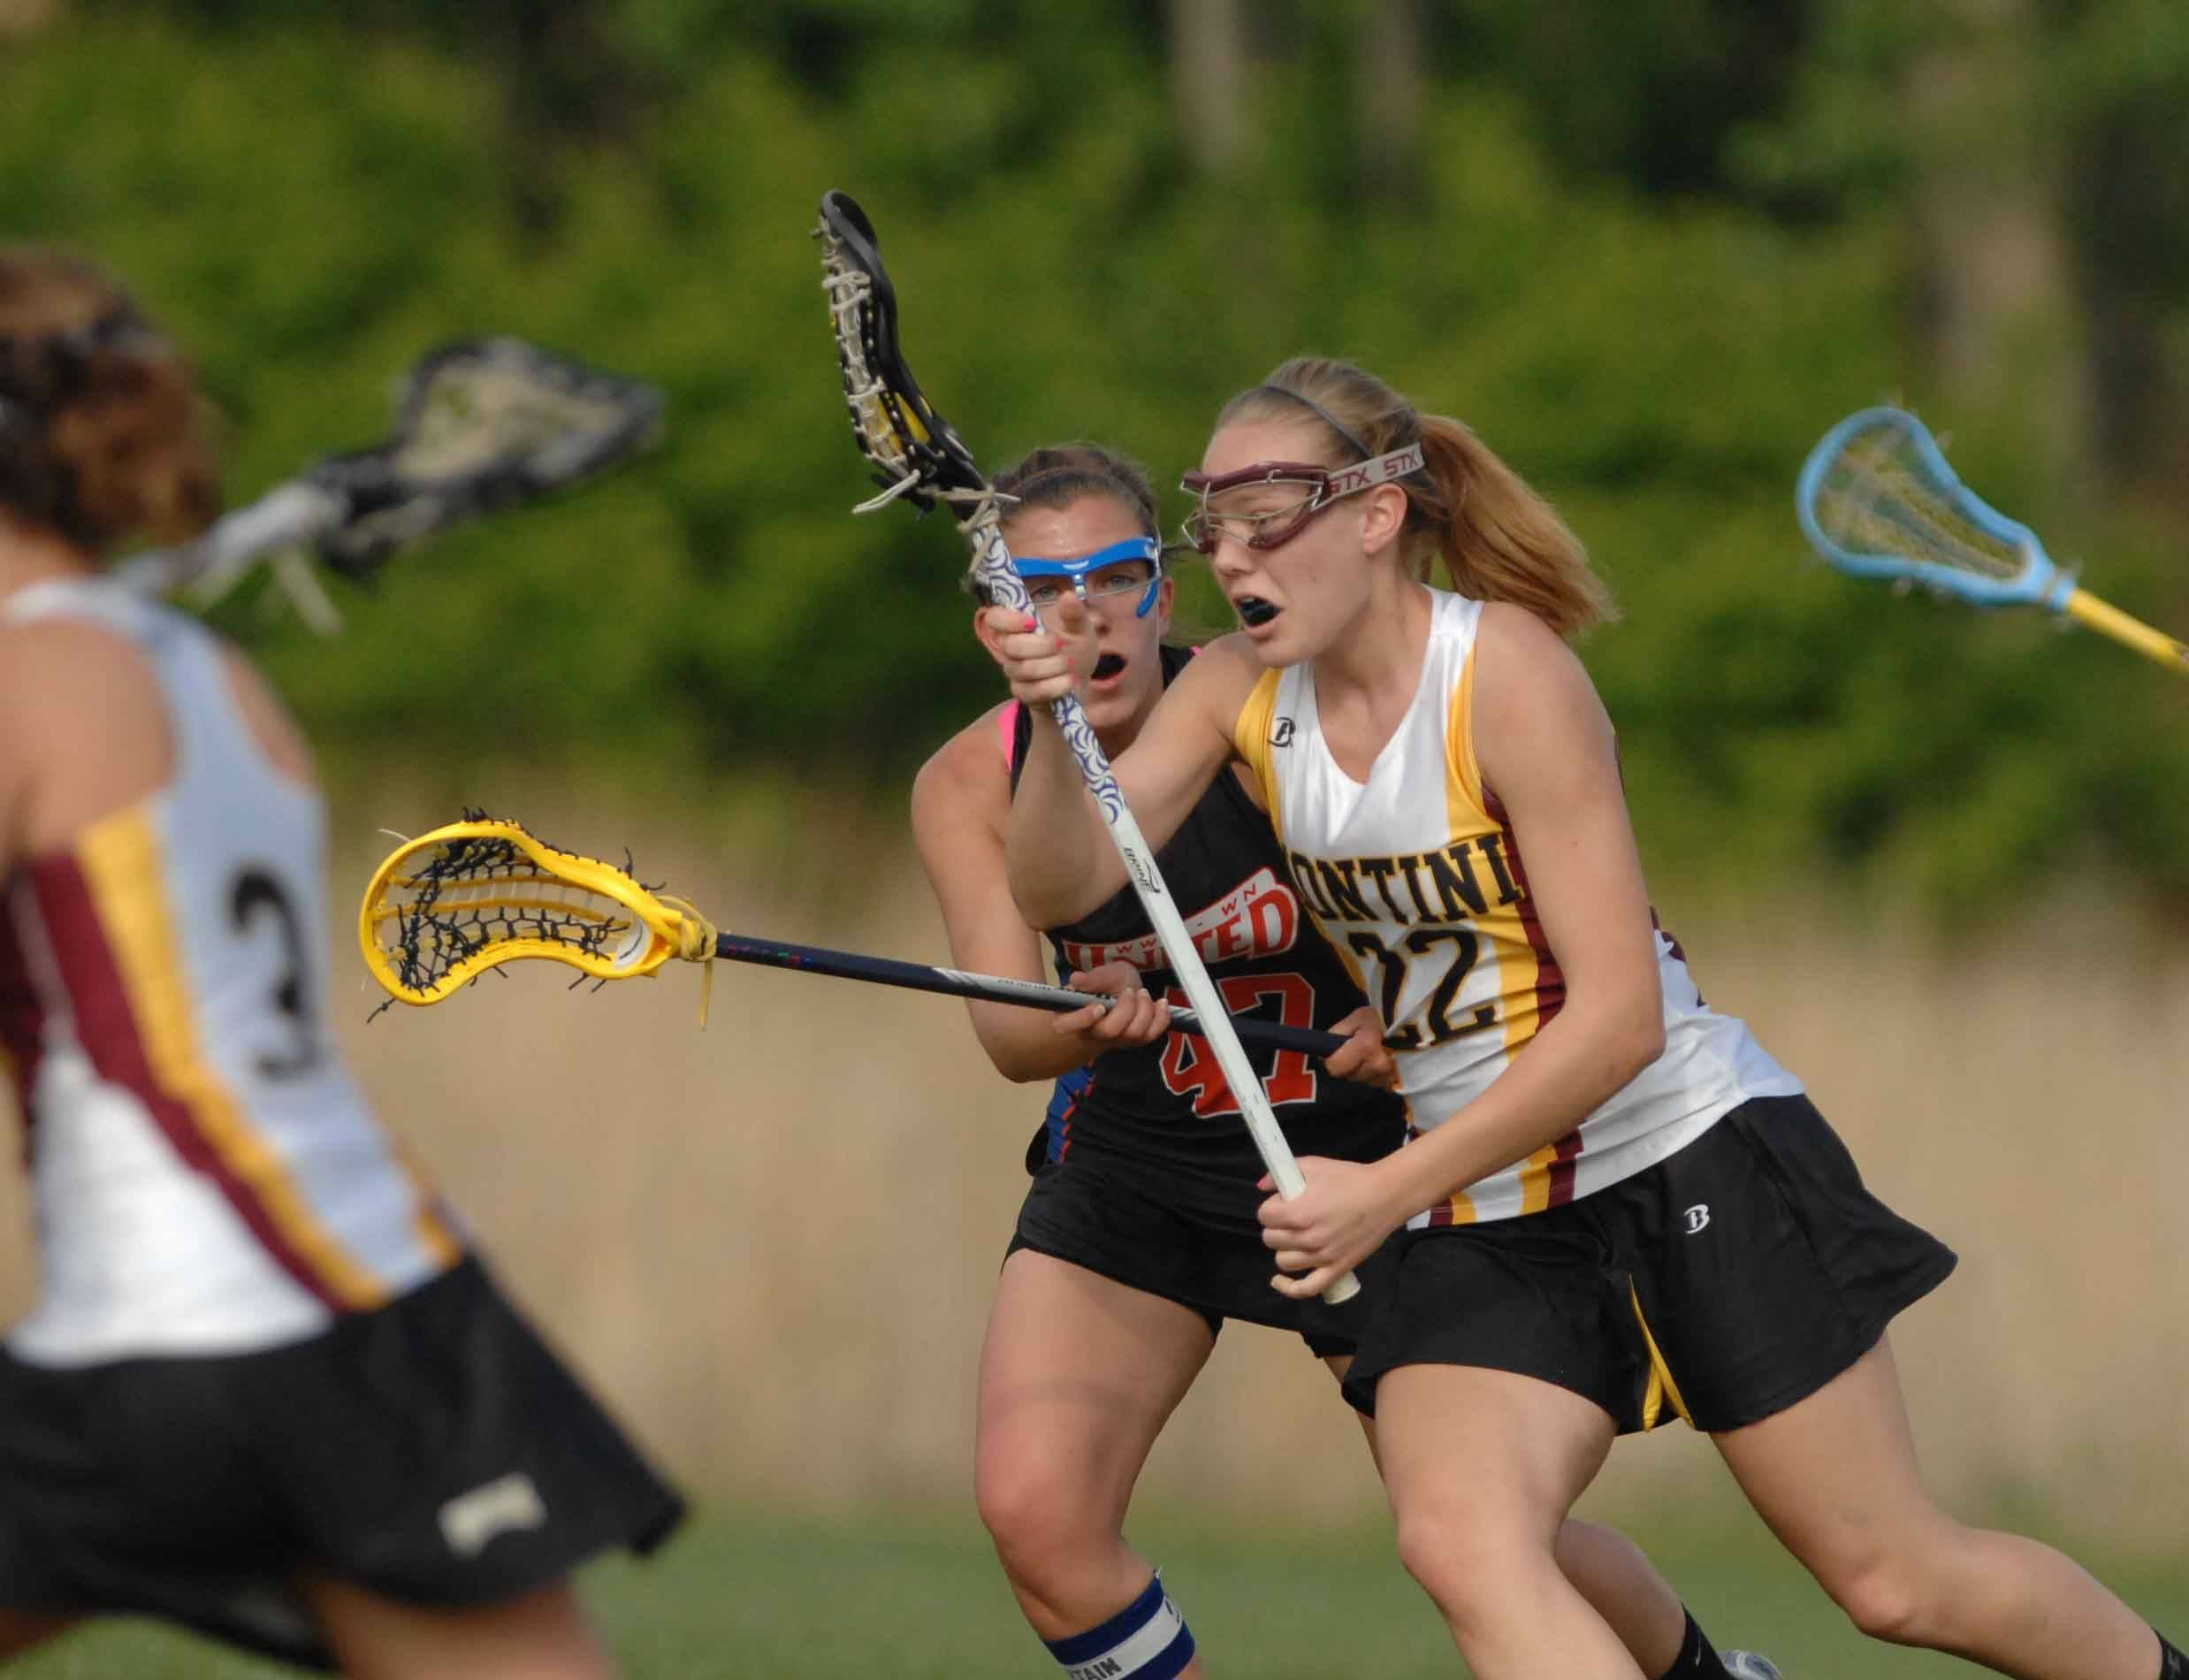 Fran Meyer of Montini moves the ball during the Wheaton vs. Montini girls sectional Lacrosse in Naperville Thursday.